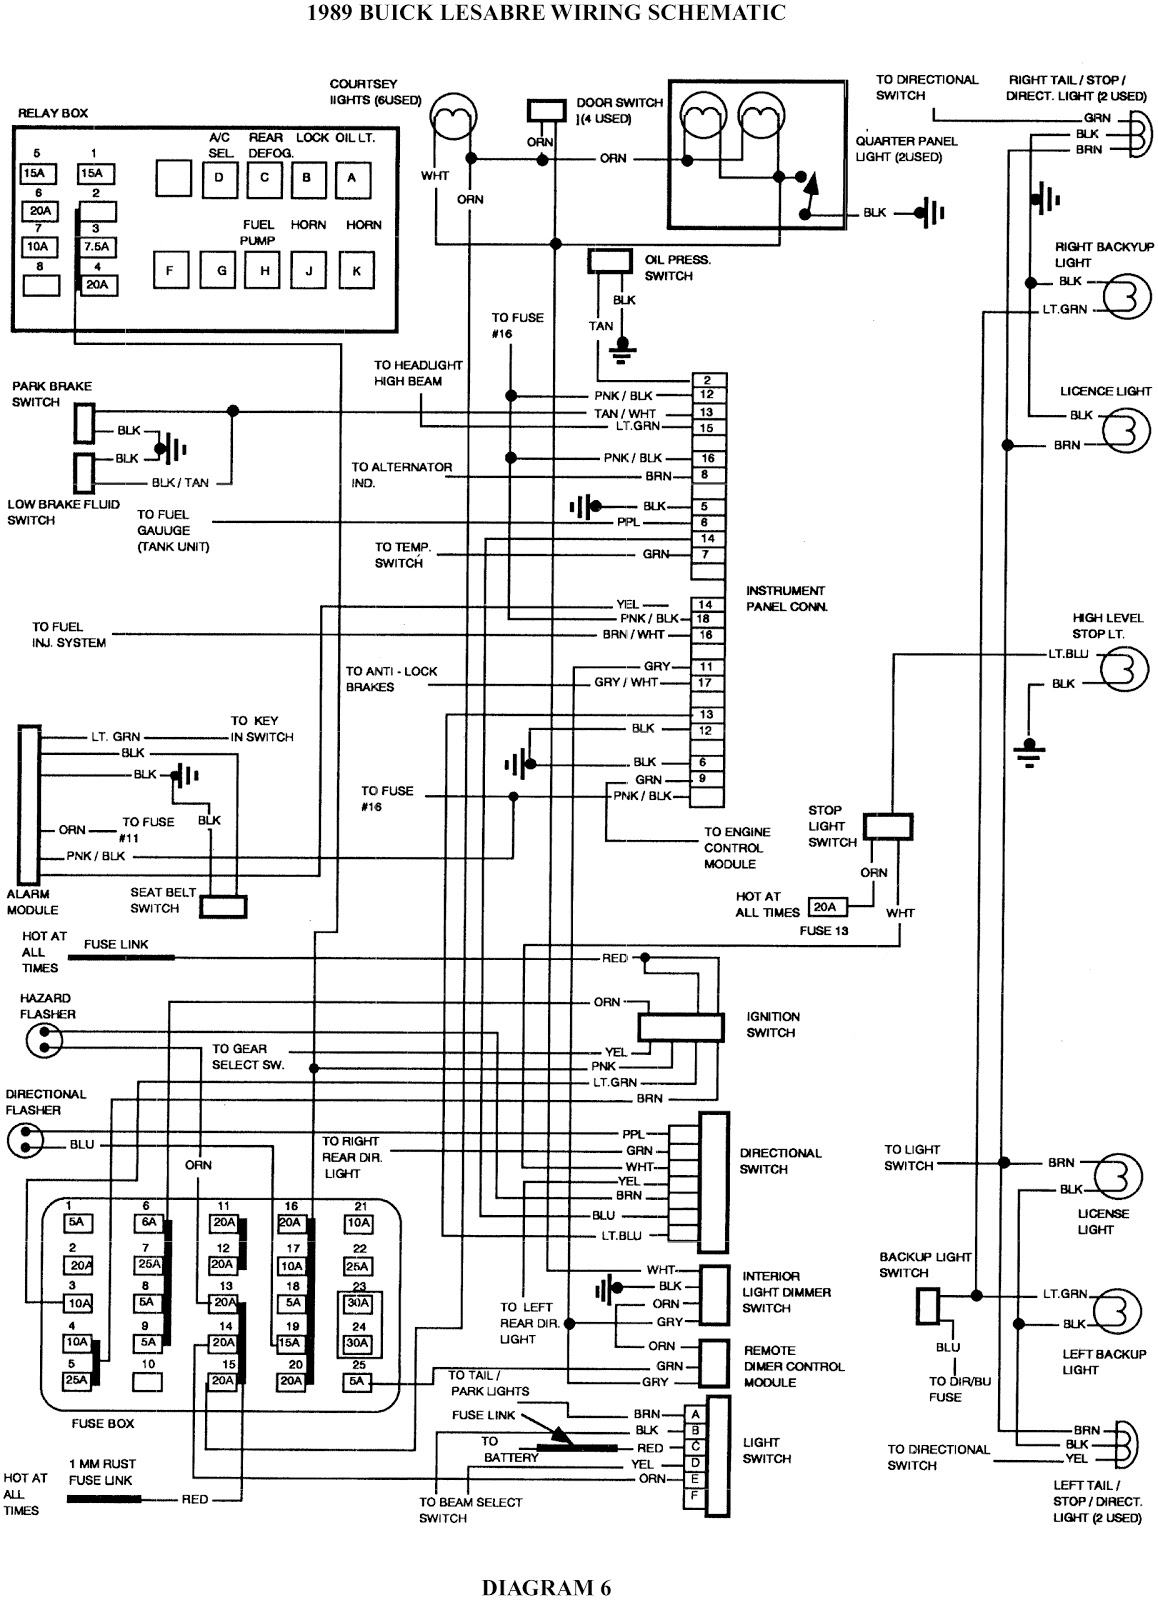 2003 Ford Windstar Electrical Wiring Diagram. Ford. Wiring